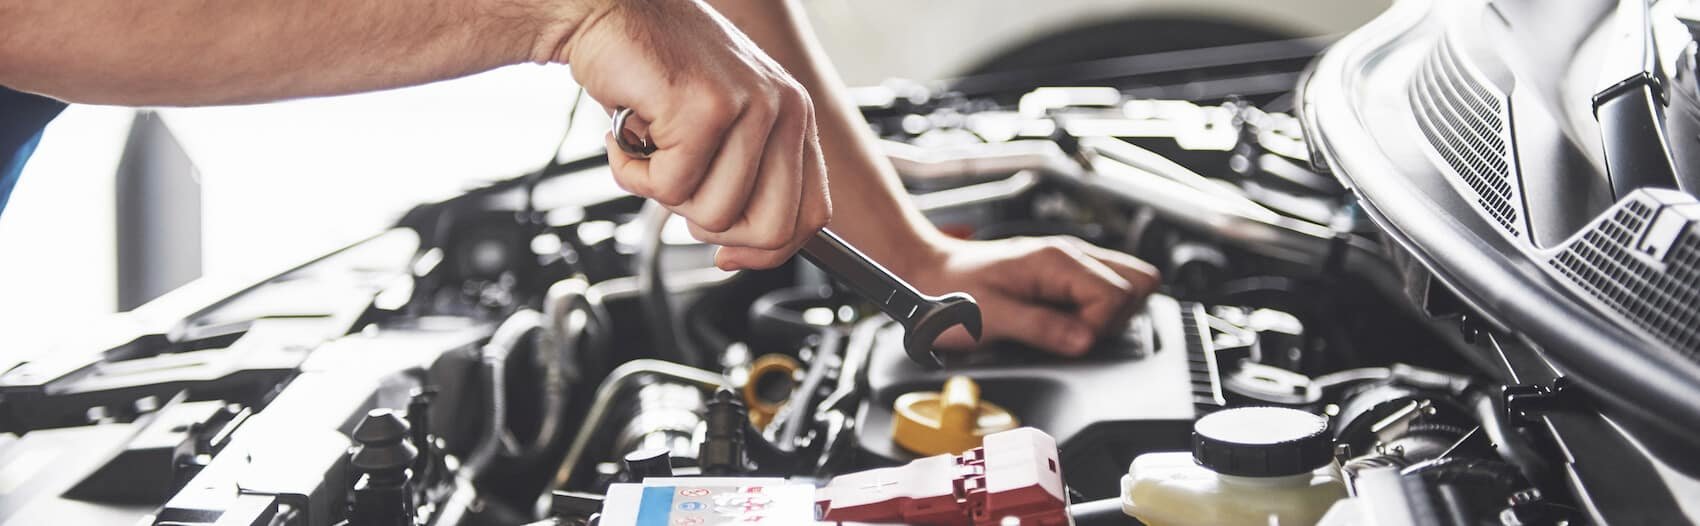 Servicing used luxury car near Yonkers, NY